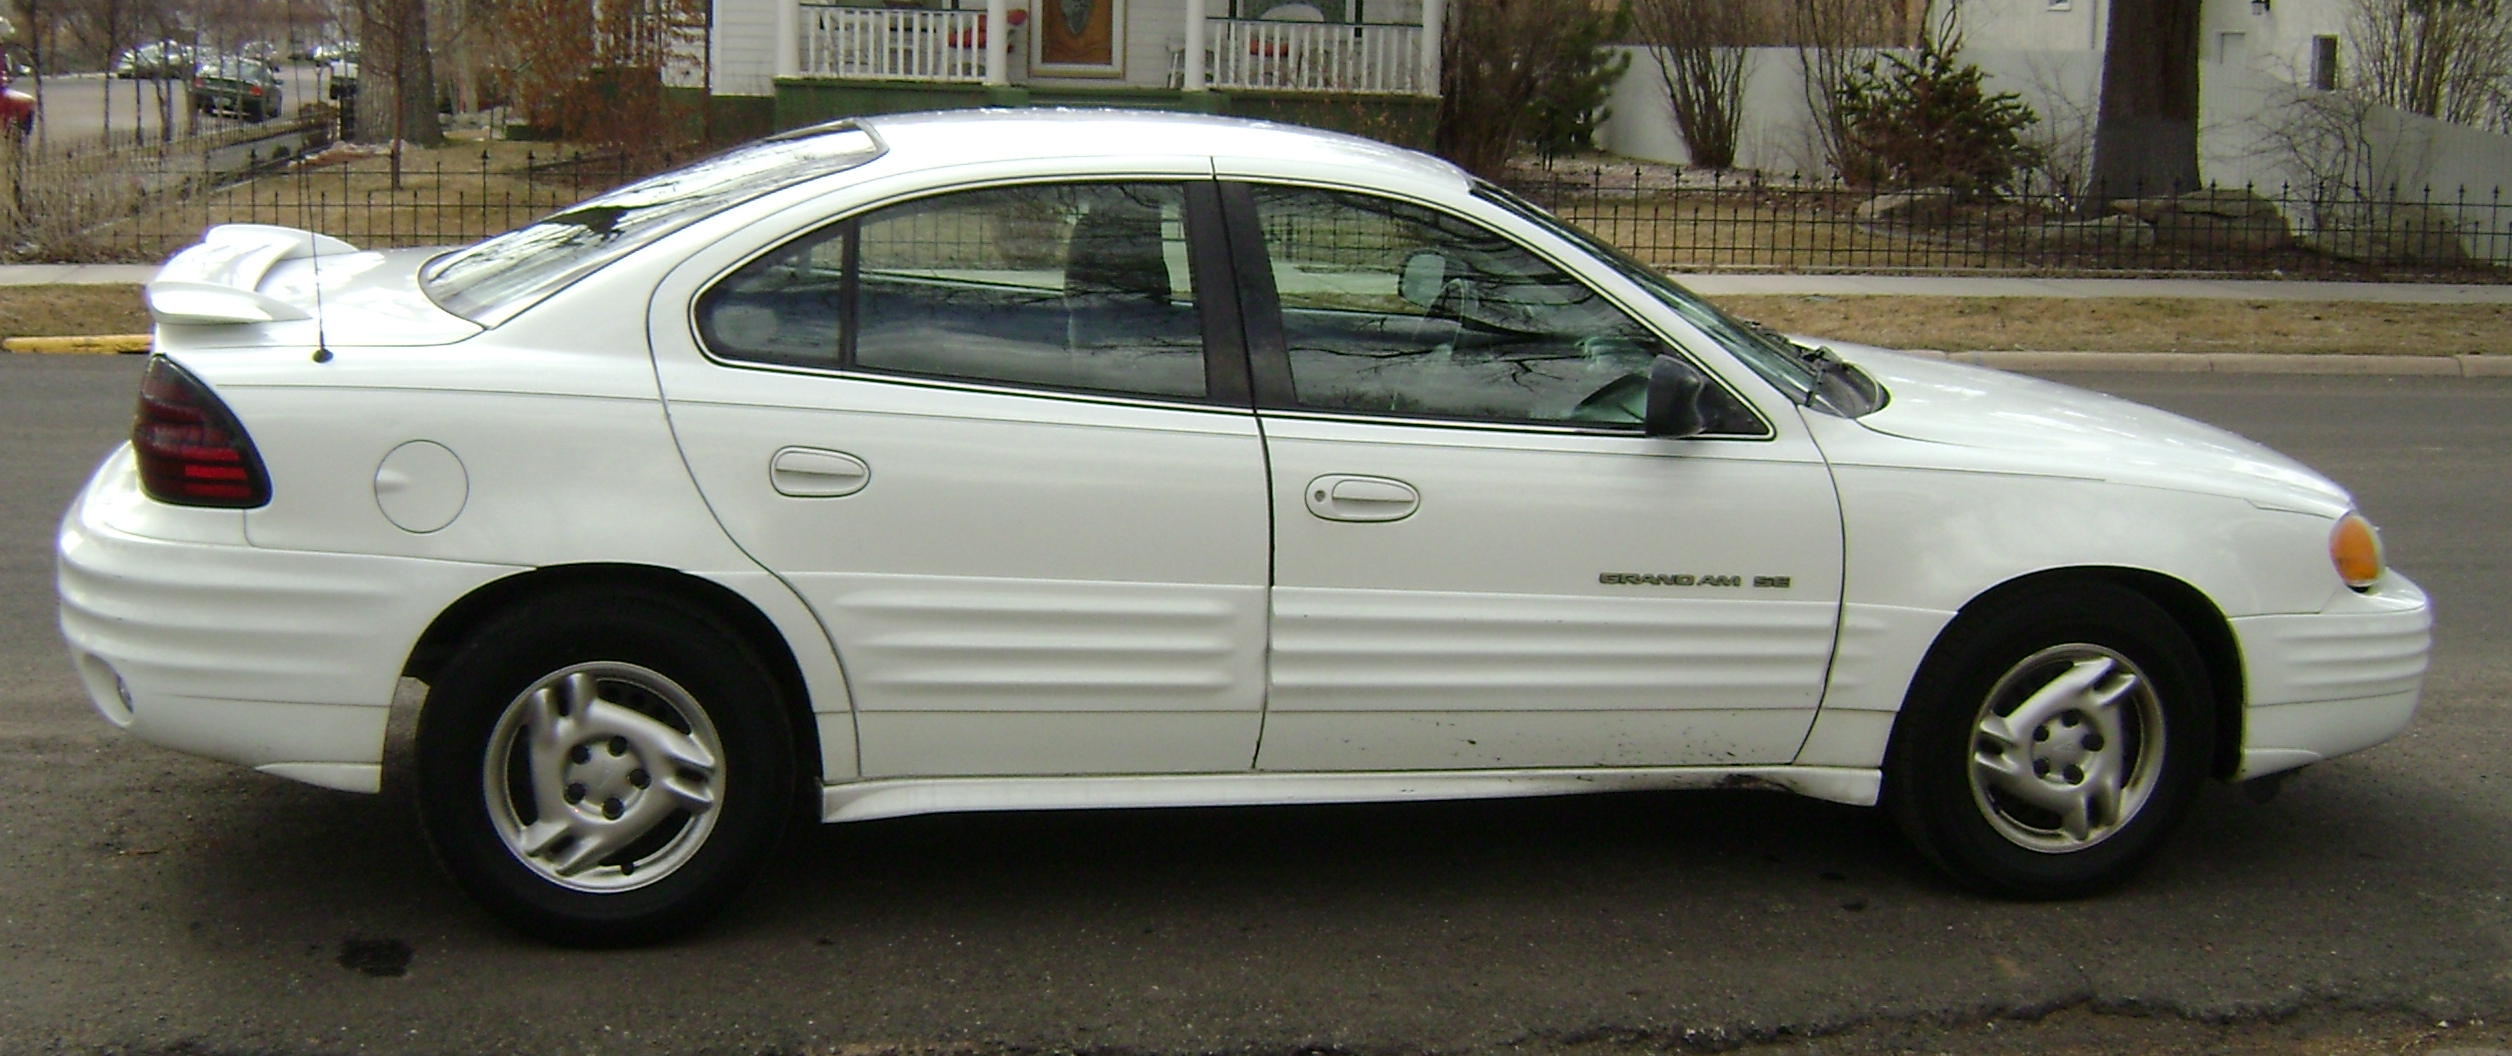 2001 Pontiac Grand Am #16